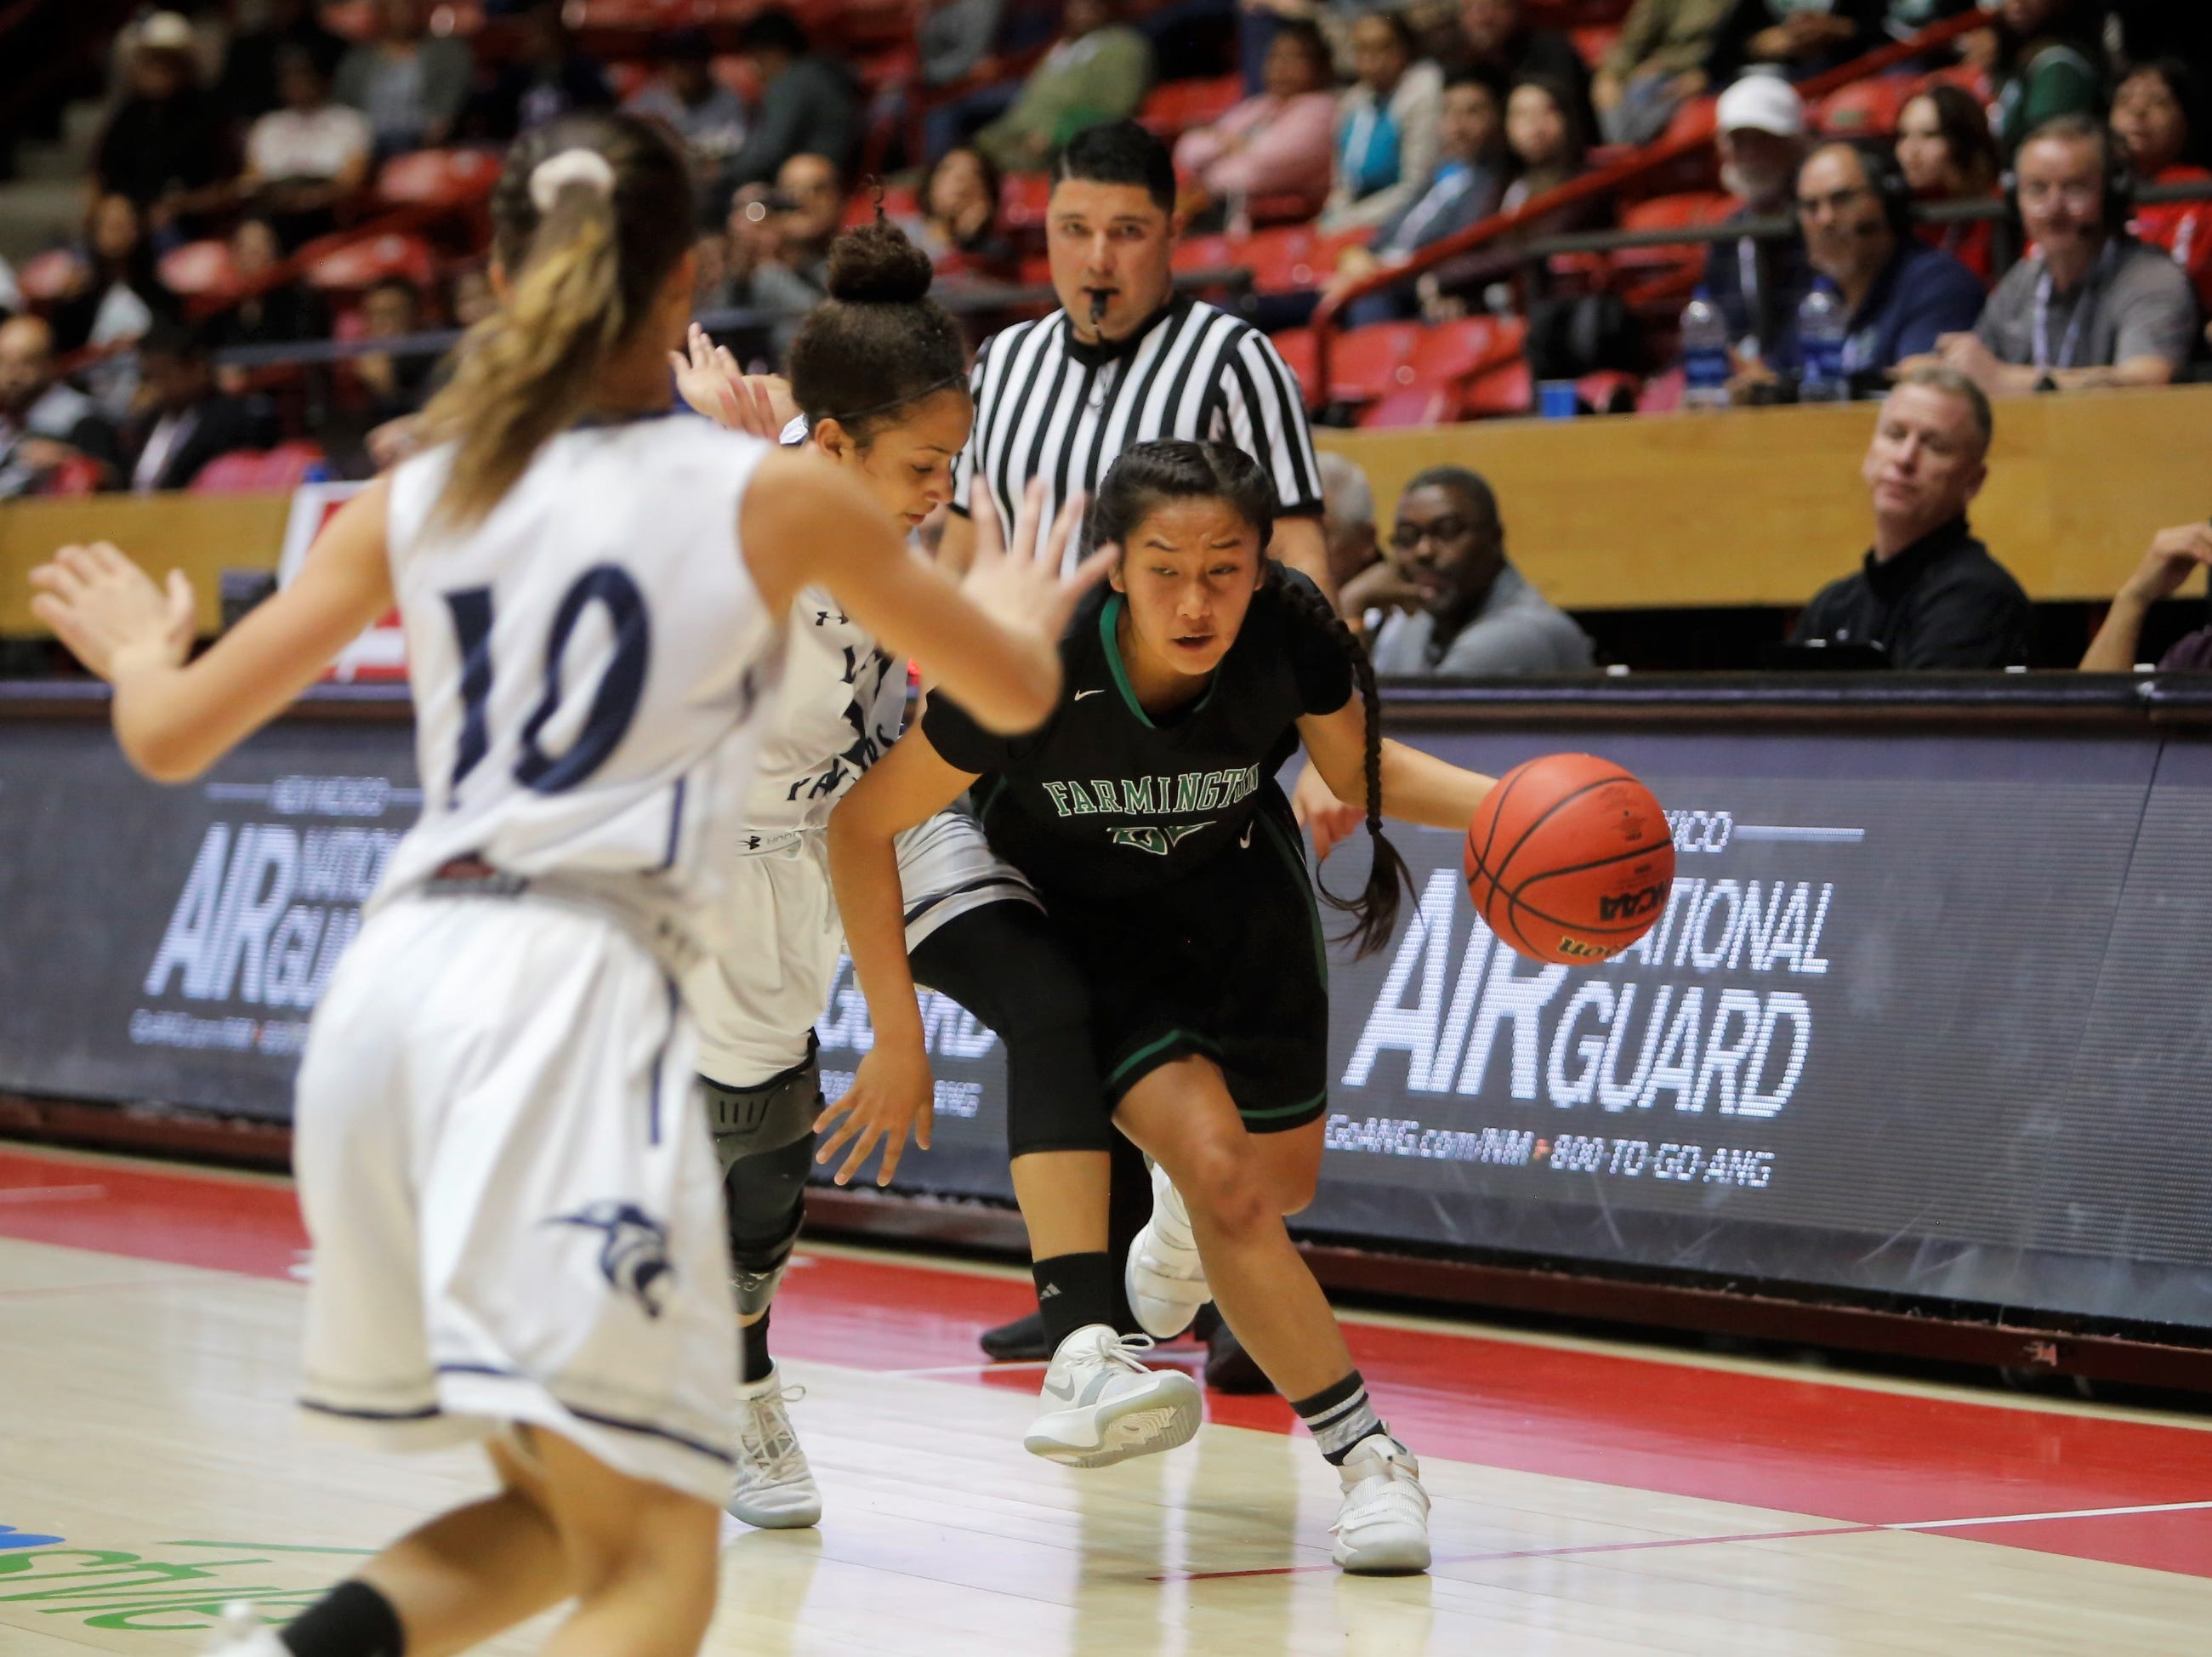 Farmington's Kiiyani Anitielu drives along the the far left baseline against Piedra Vista during Tuesday's 5A state quarterfinals game at Dreamstyle Arena in Albuquerque.